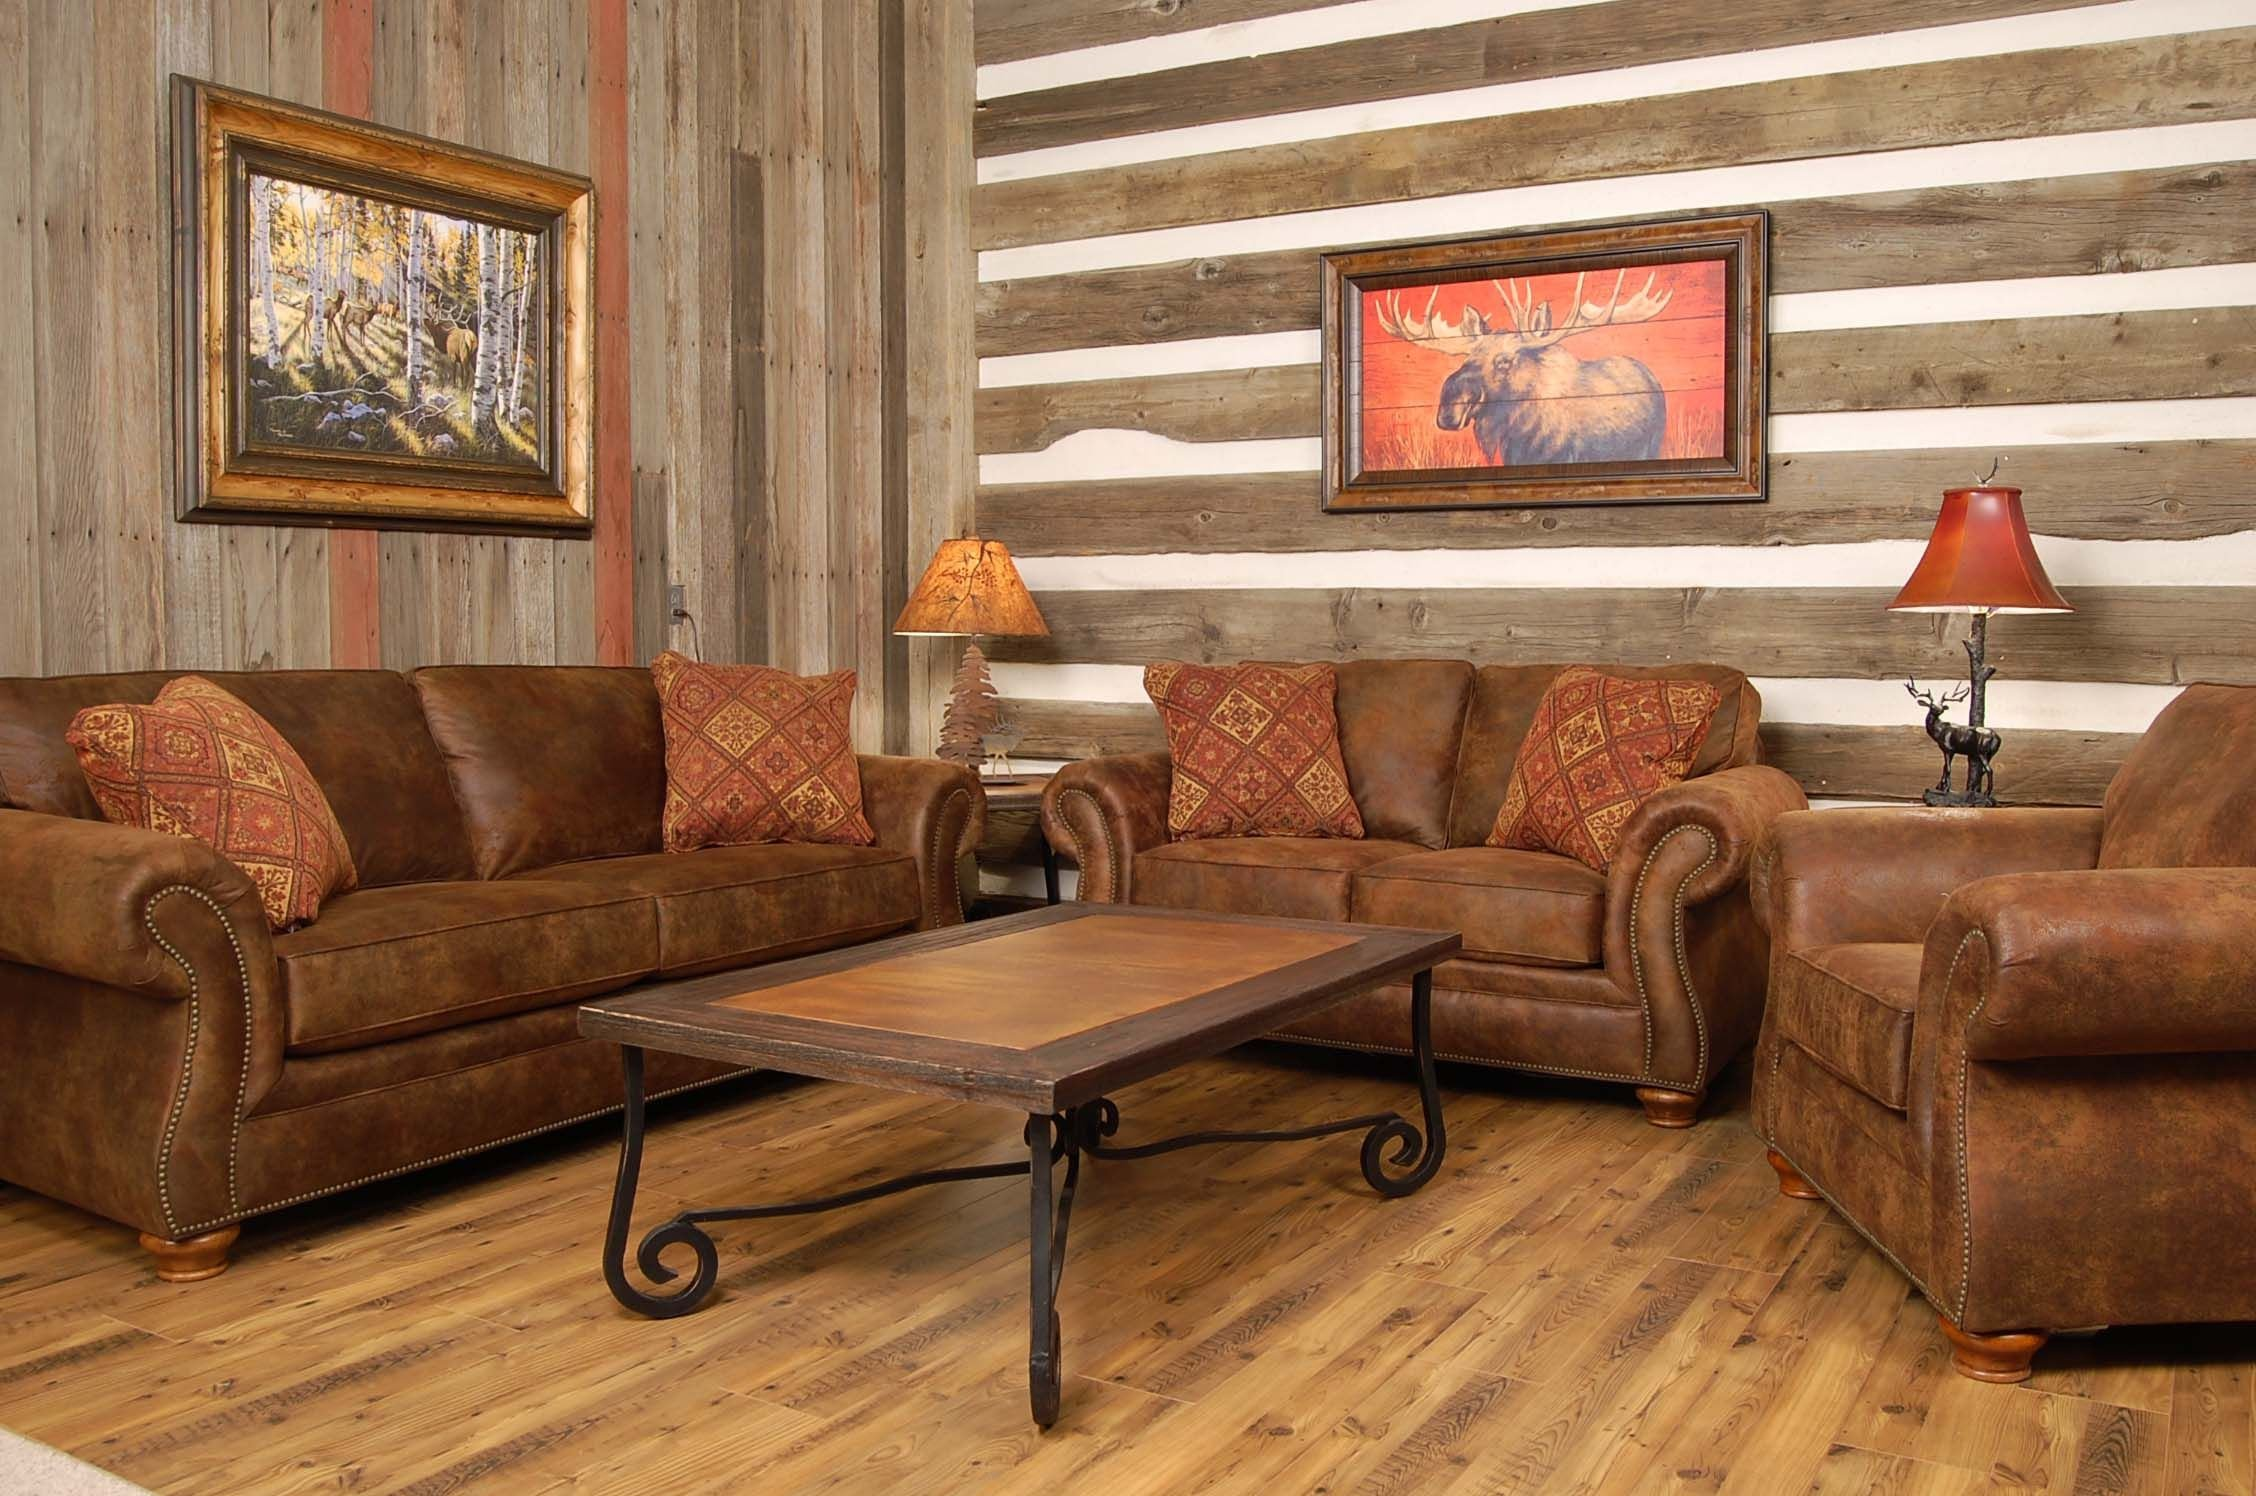 Country themed Living Room Decor A Living Room Makeover for Less Home Decor